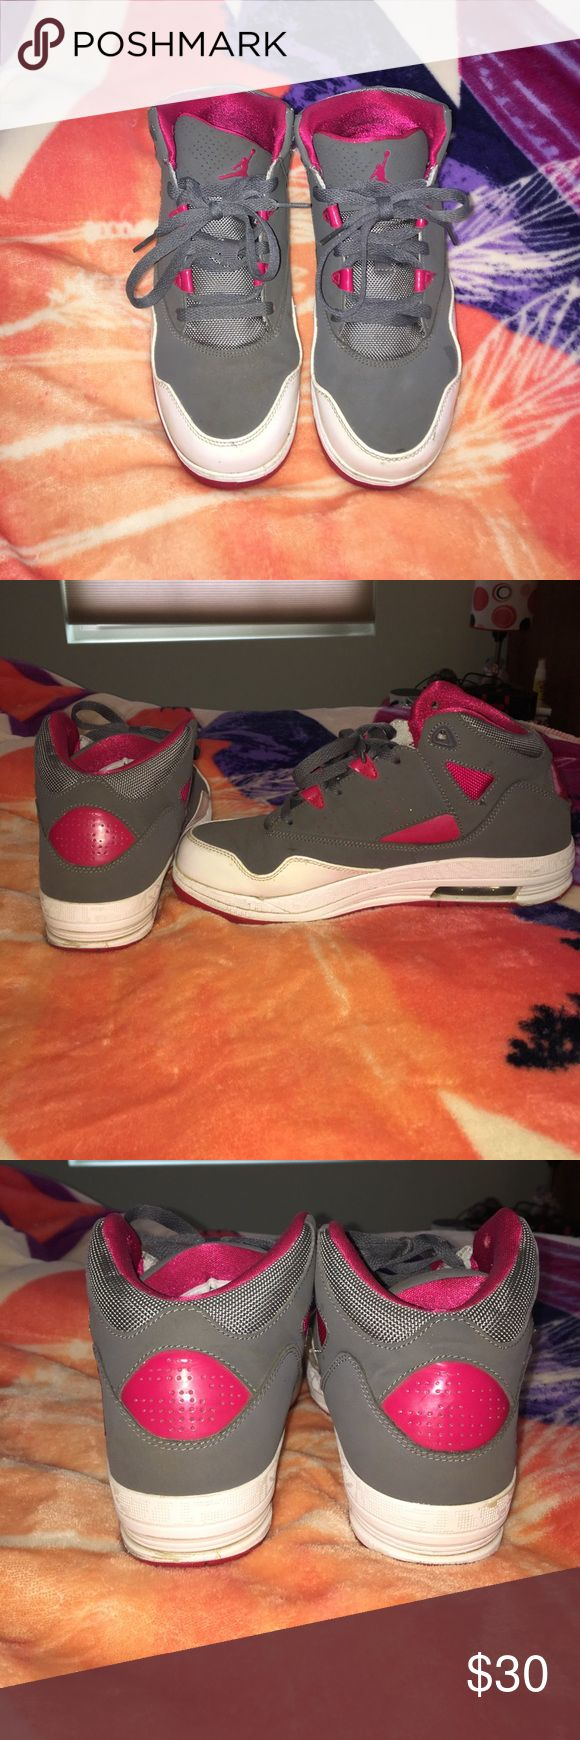 Jordan's sneakers Only worn a few times, good condition. Grey and pink Jordan sneakers. Size 7 in kids Jordan Shoes Sneakers